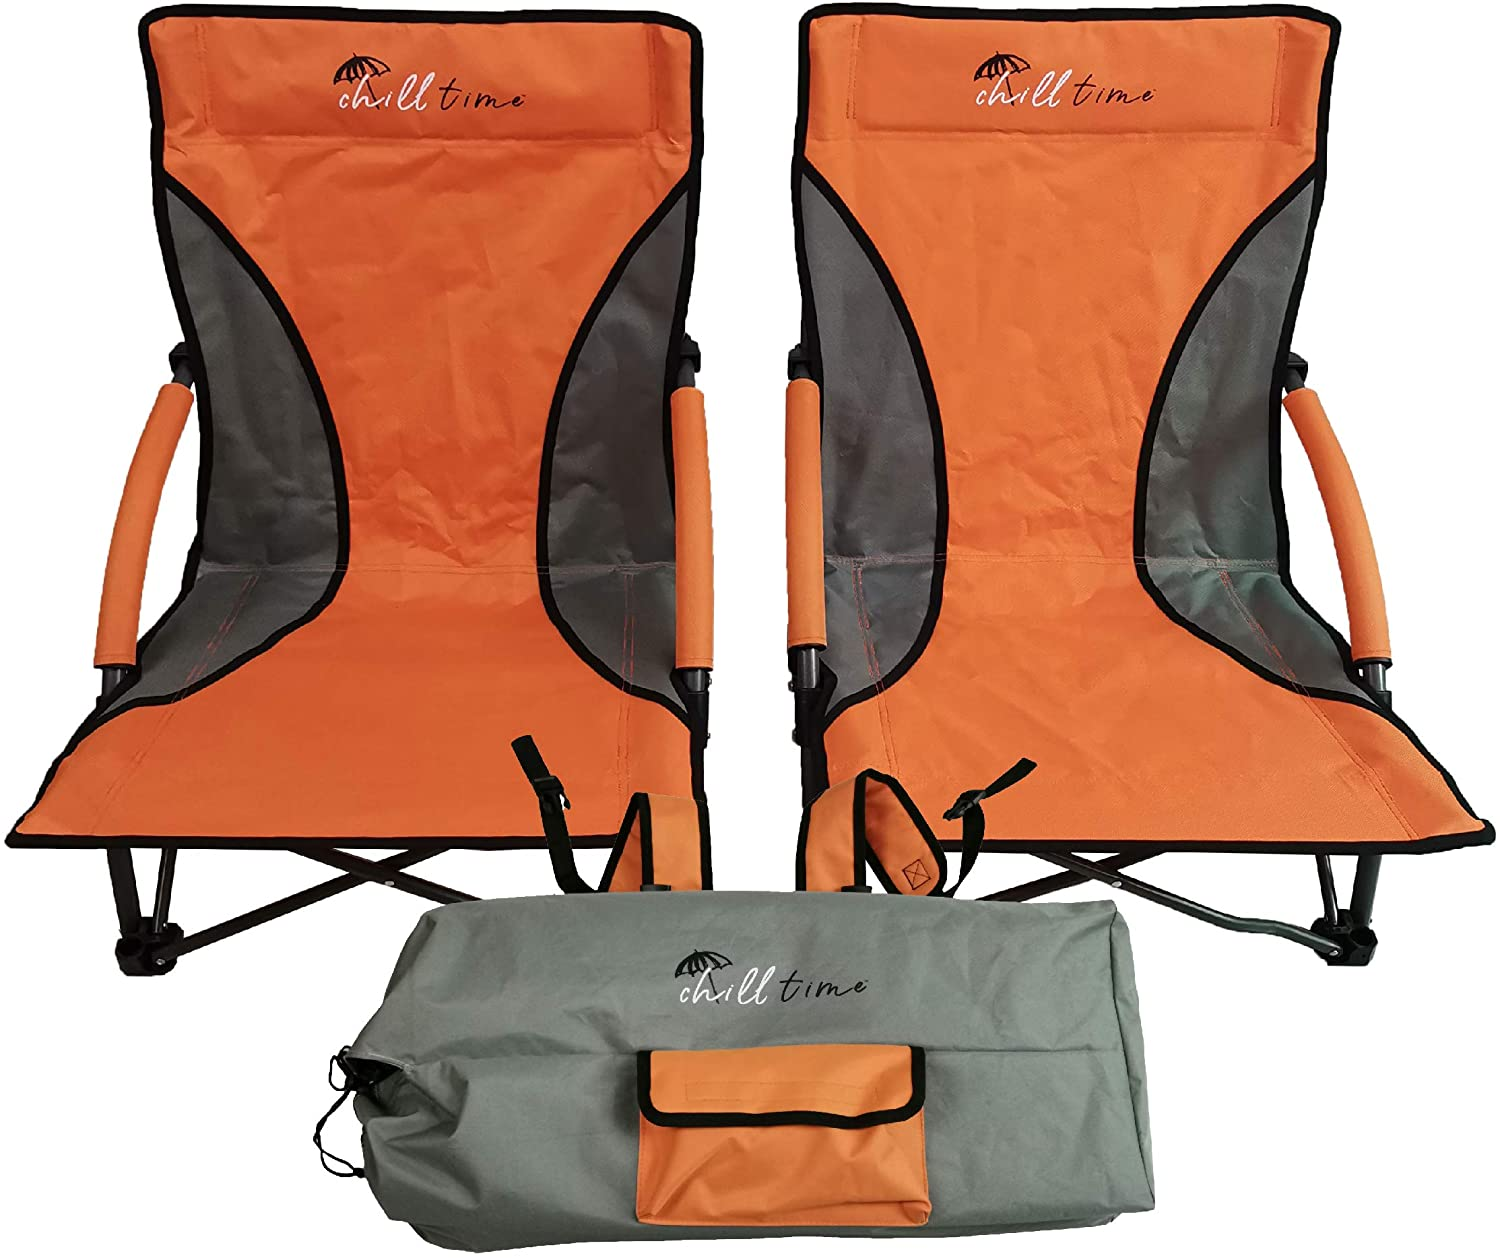 Set of orange chilltime chairs